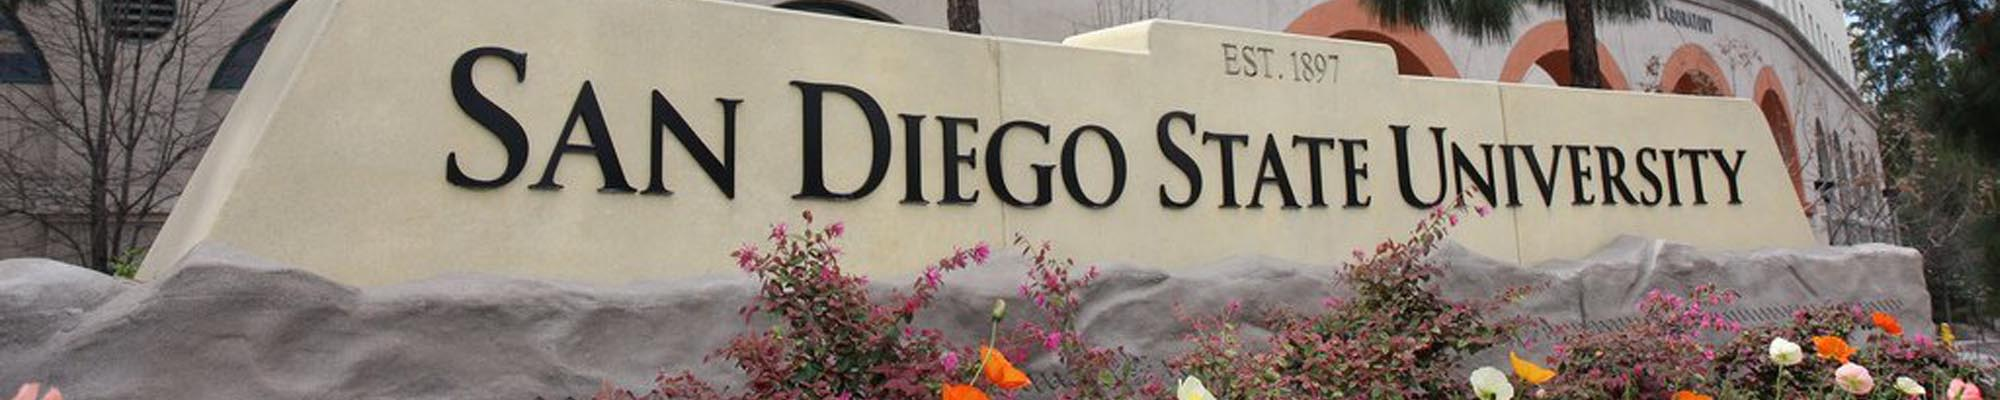 San Diego State University established 1897